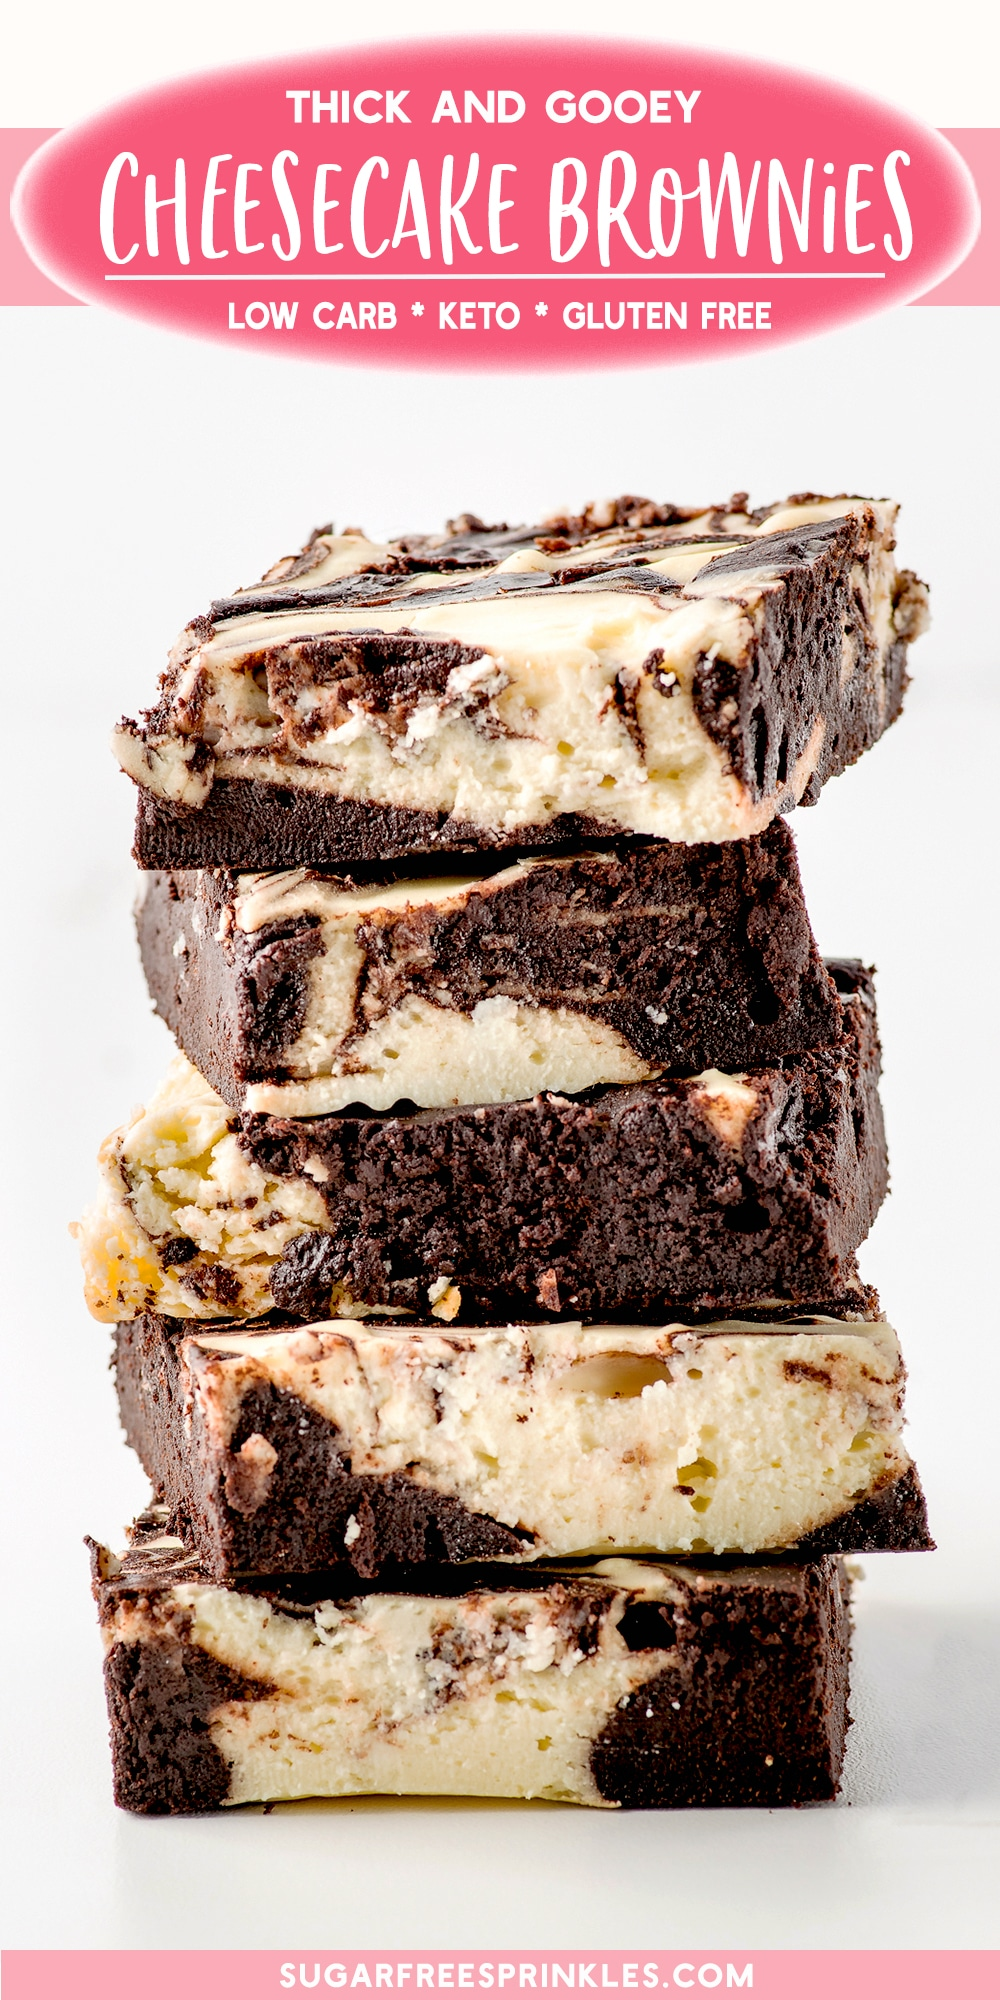 These keto cheesecake brownies have less than 3 net carbs per serving. They are super chocolatey, rich and creamy, and make a perfect sweet treat without a load of sugar. Made without grains or refined sugars these brownies are also gluten-free and low carb. These homemade cheesecake brownies are great with a scoop of low carb ice cream and keto-friendly caramel. #ketobrownies #lowcarbbrownies #glutenfreebrownies